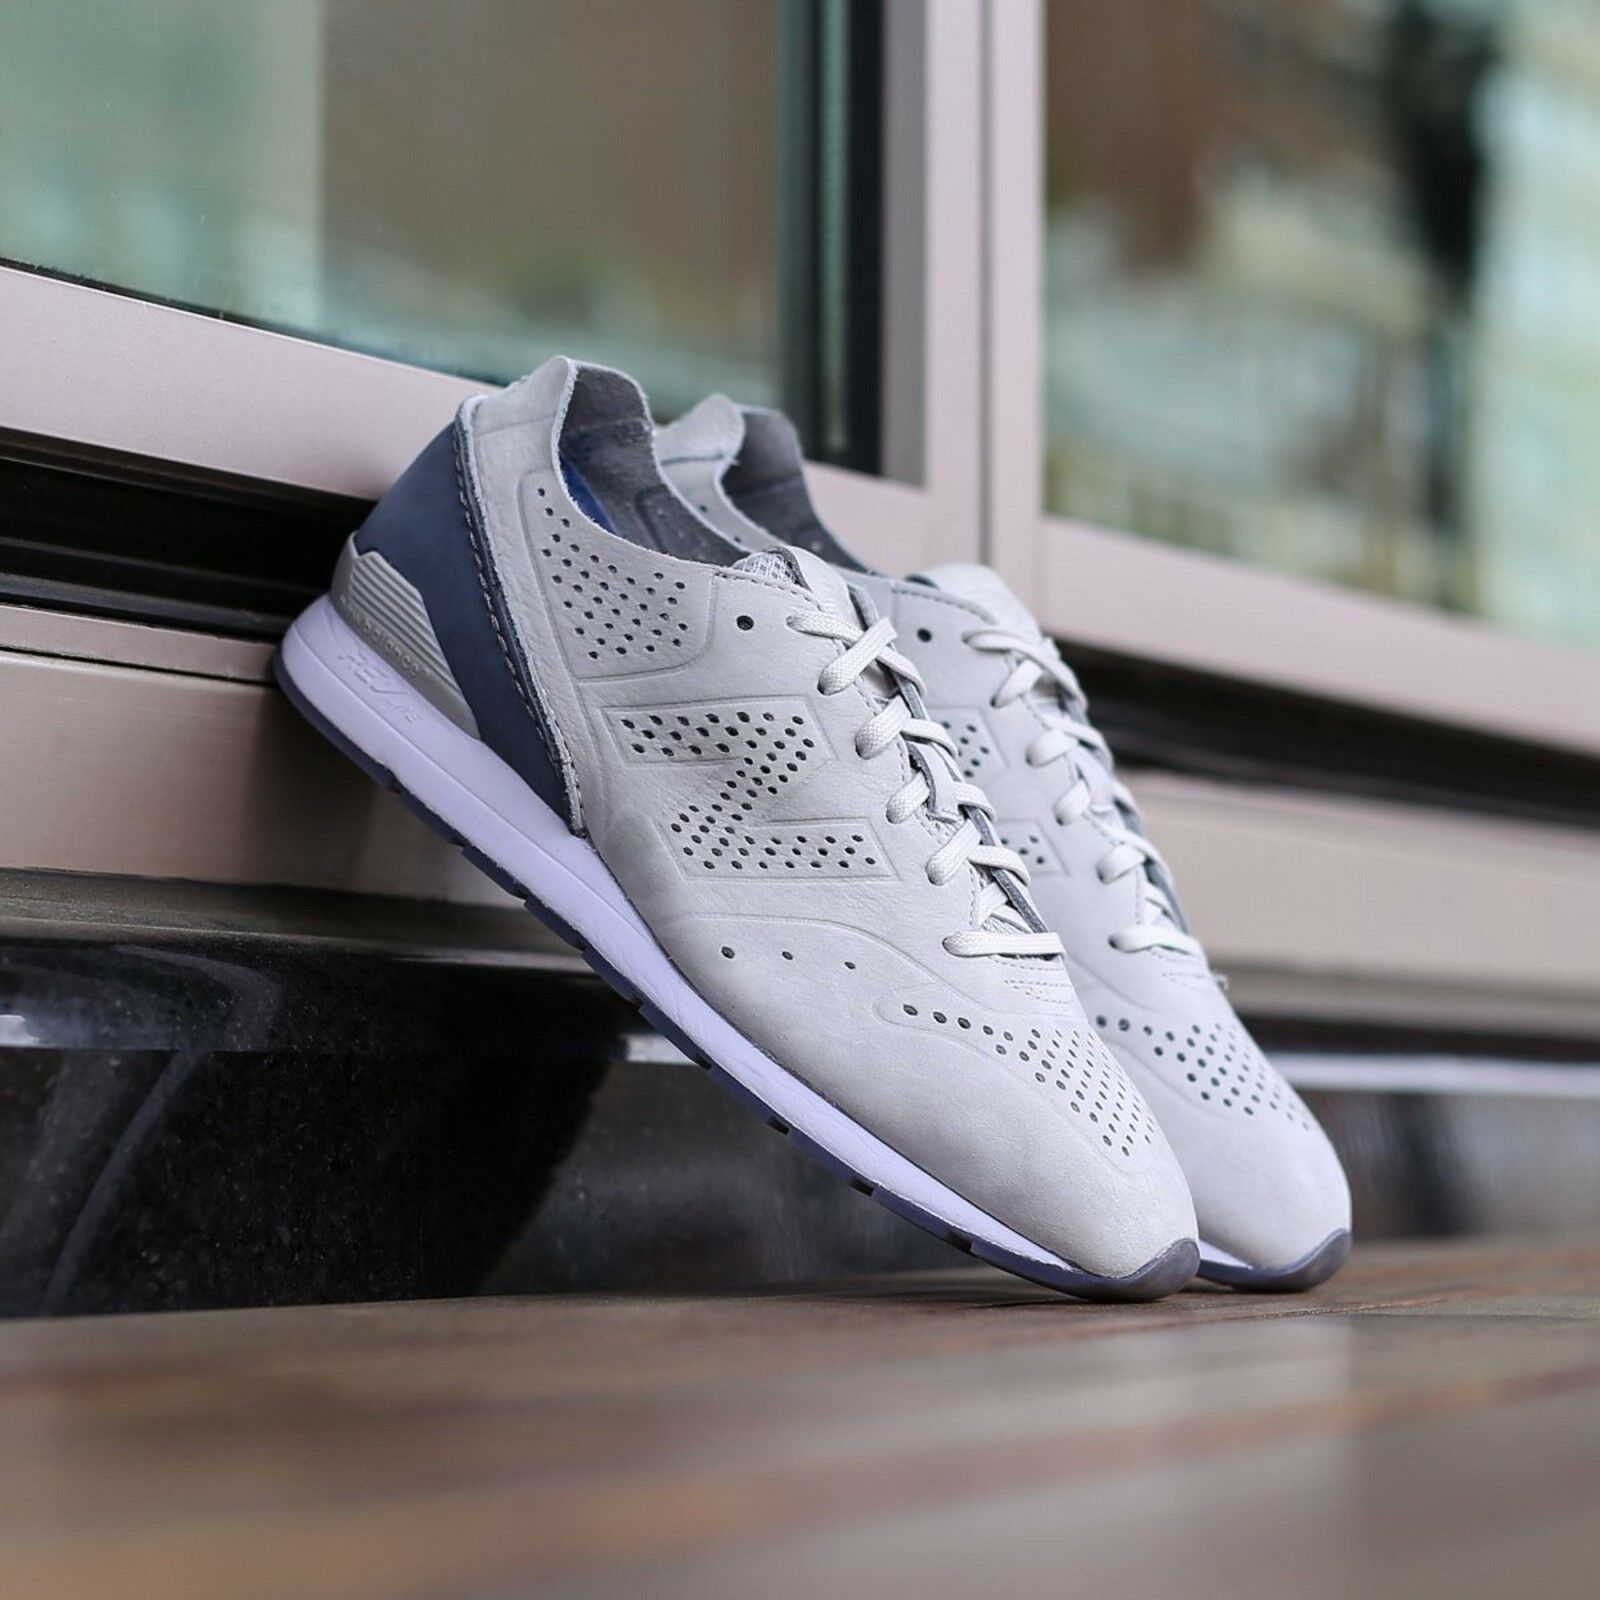 New Balance 696 Deconstructed 'Summer Utility scarpe da ginnastica ginnastica ginnastica grigio Dimensione 8 Retail  130 f55423